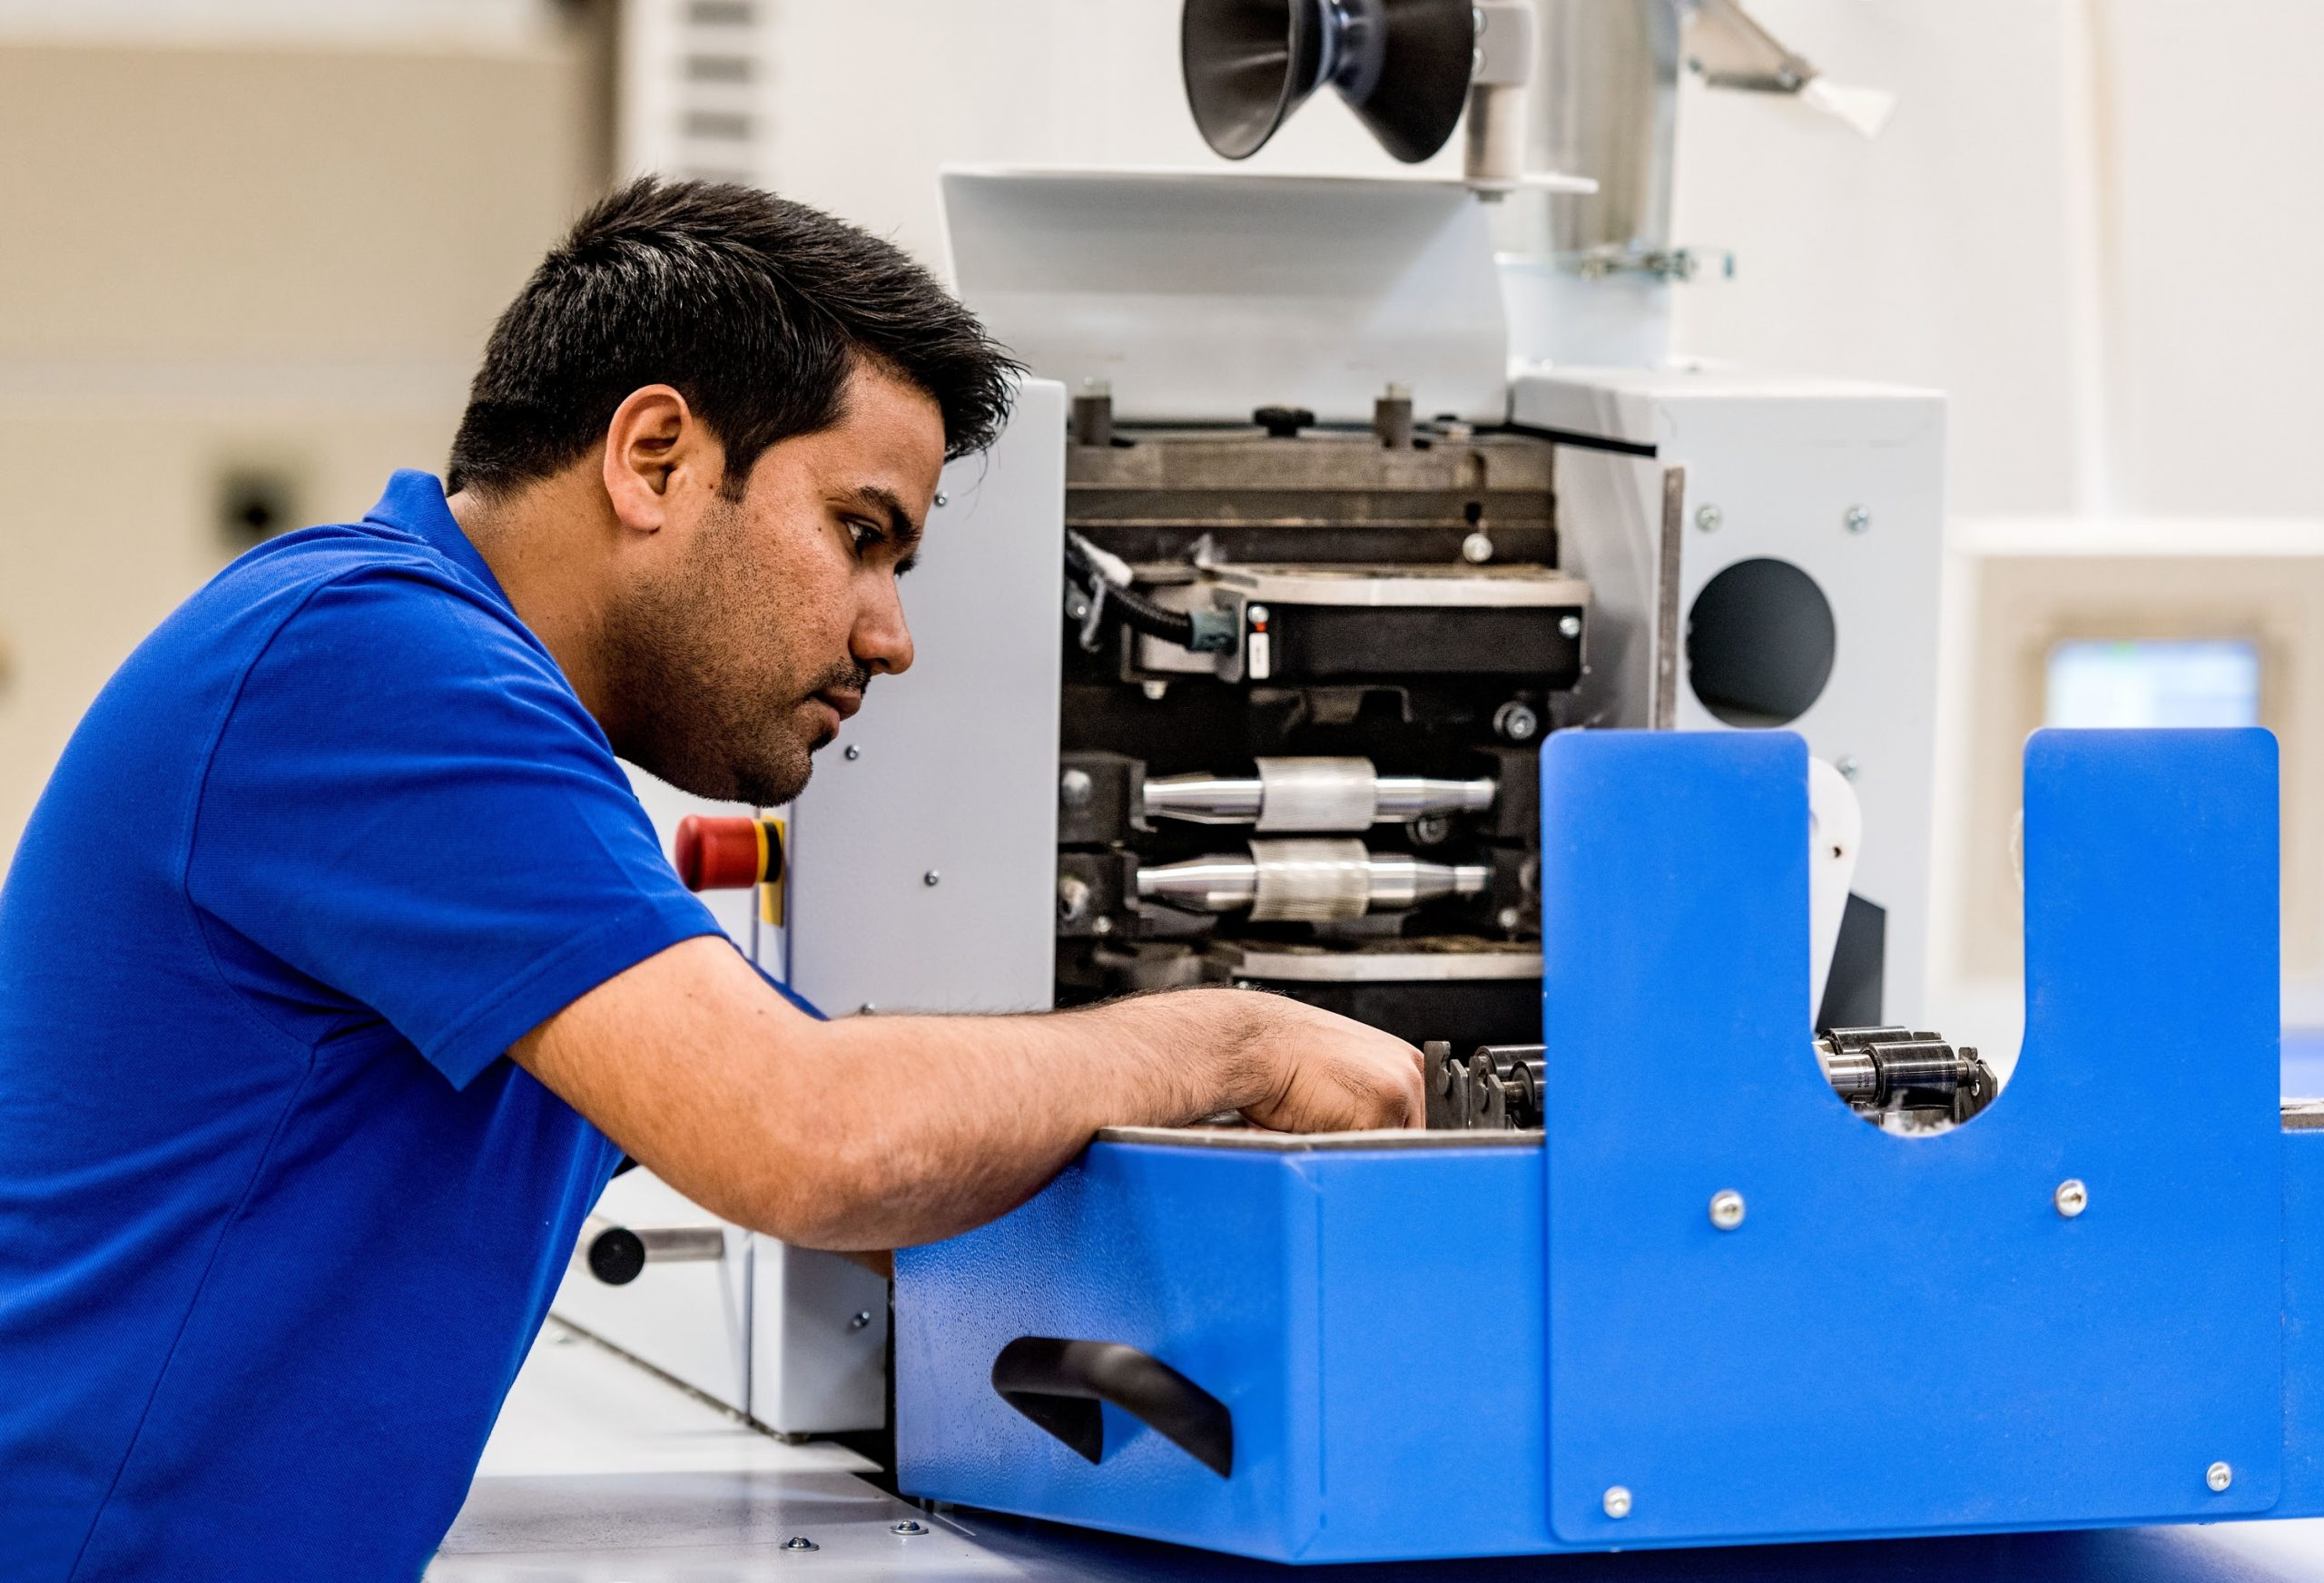 IDF DIRECT SPINNING – Process shortening with technological advantages